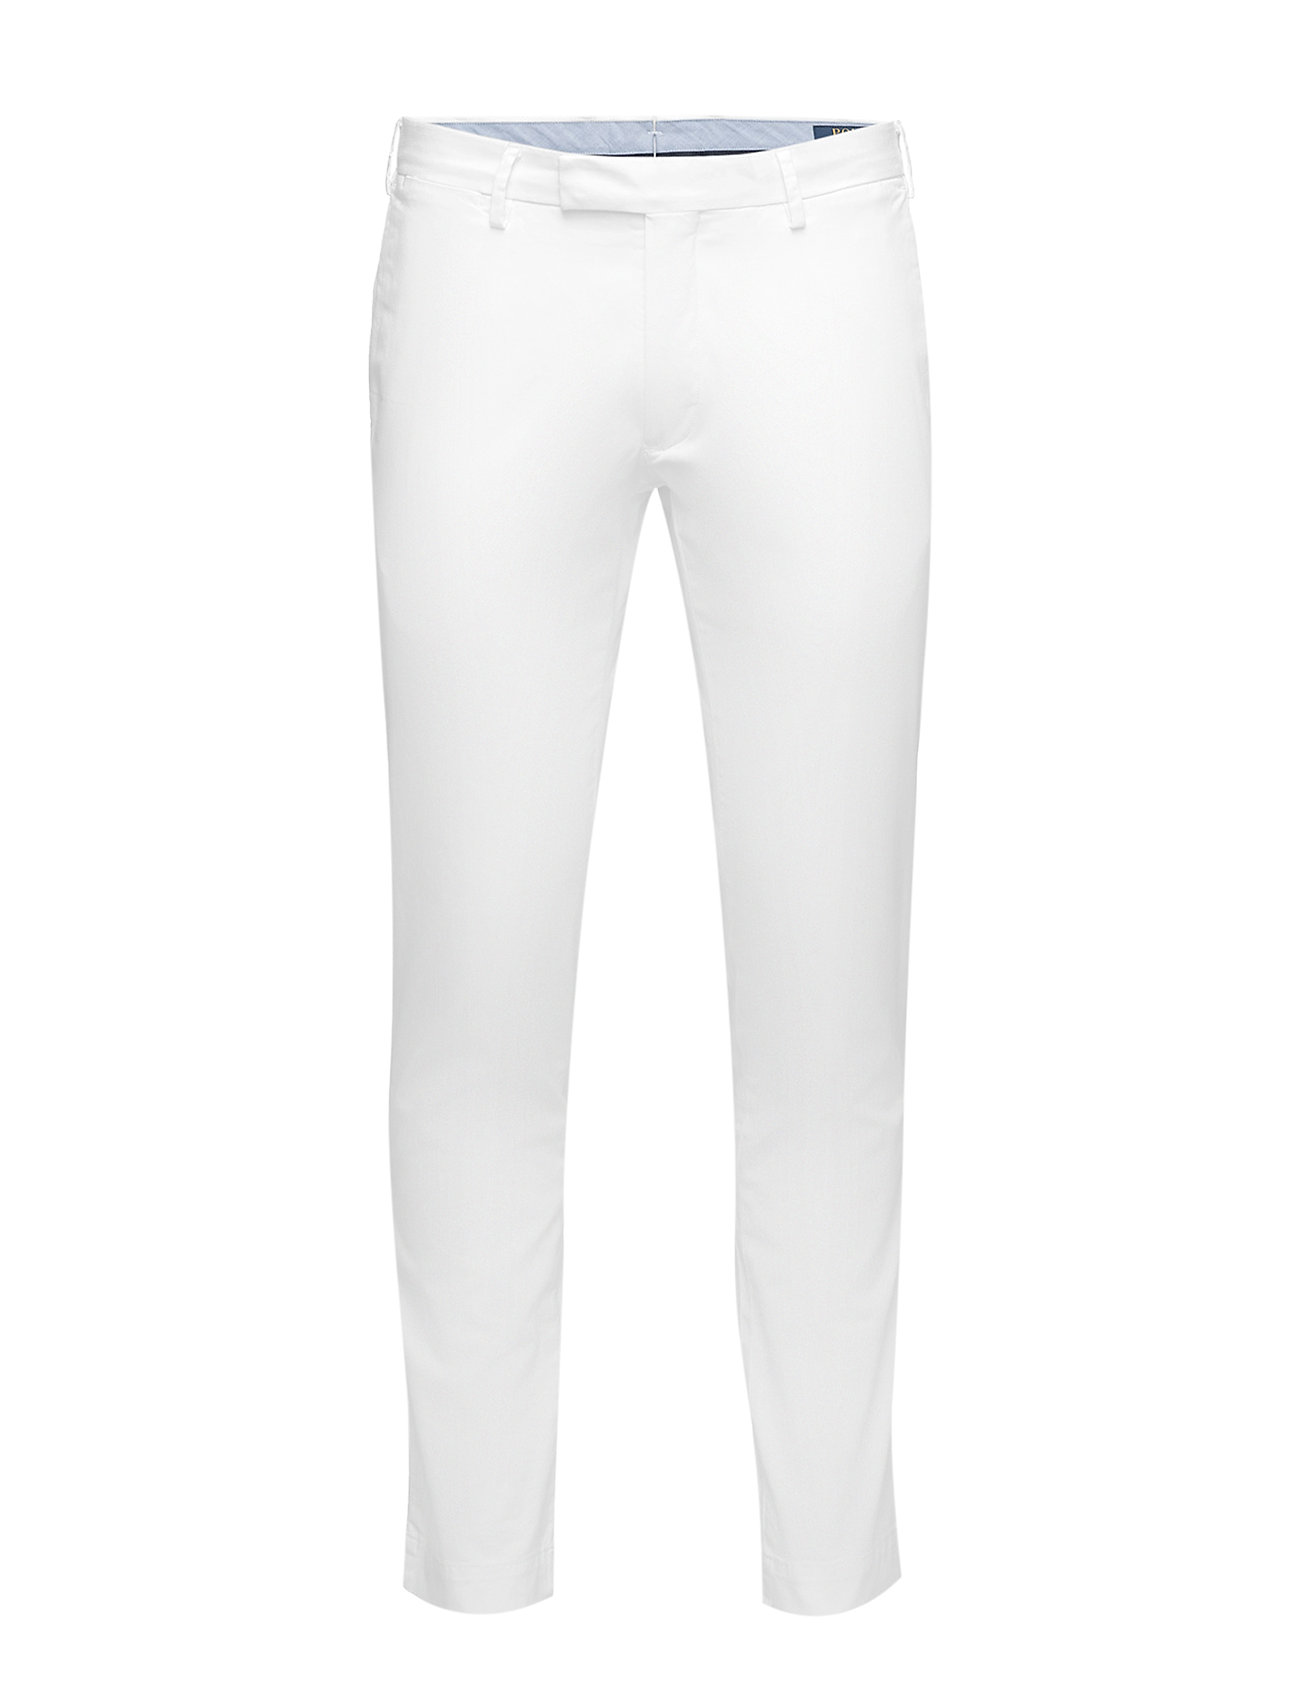 Polo Ralph Lauren Stretch Straight Fit Chino - WHITE